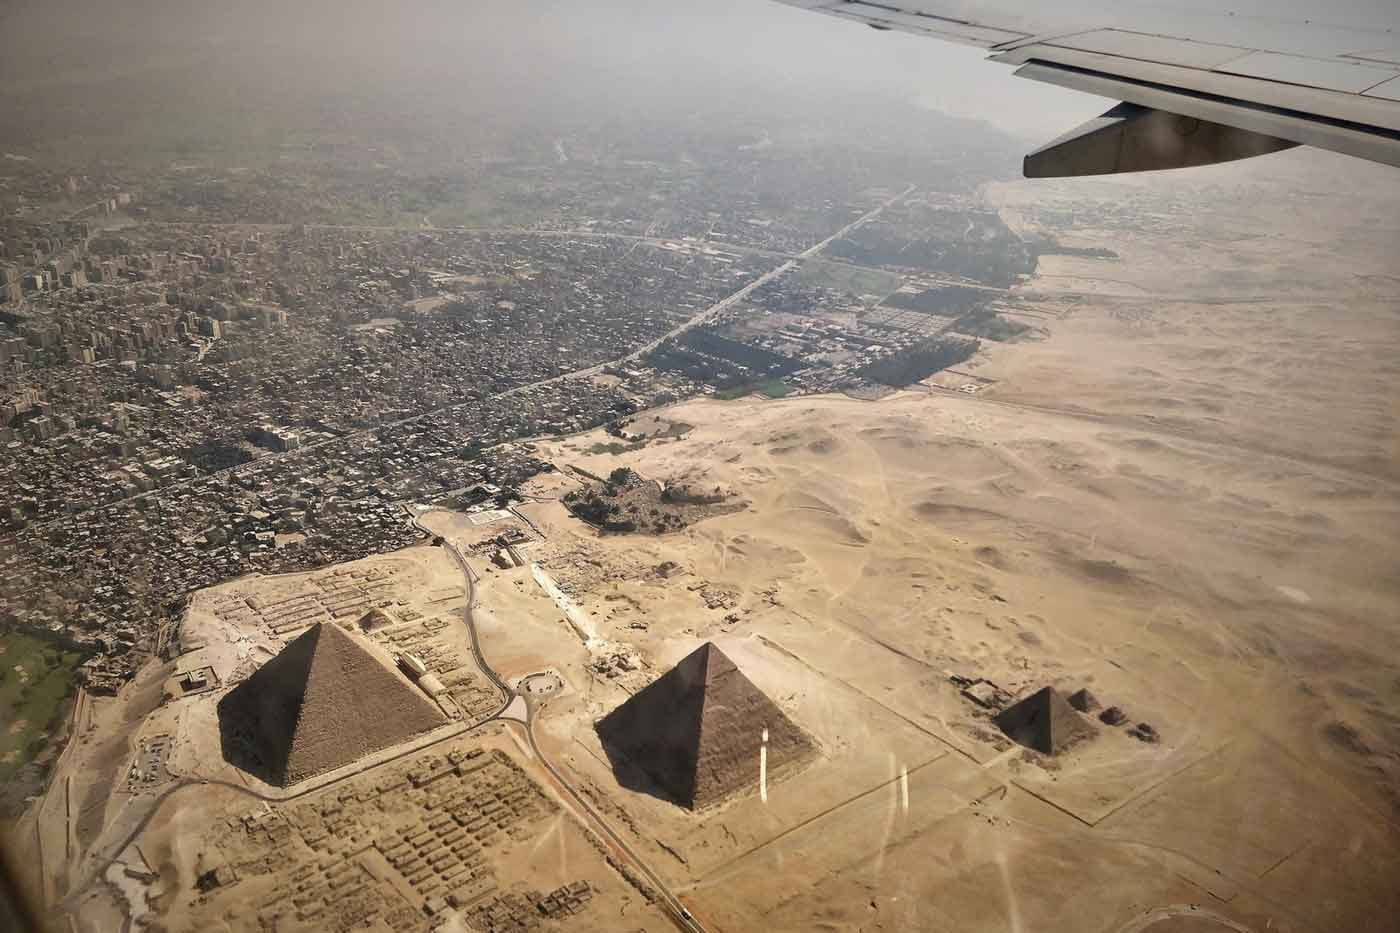 Aerial photo from airplane flying over pyramids and city of Cairo, Egypt